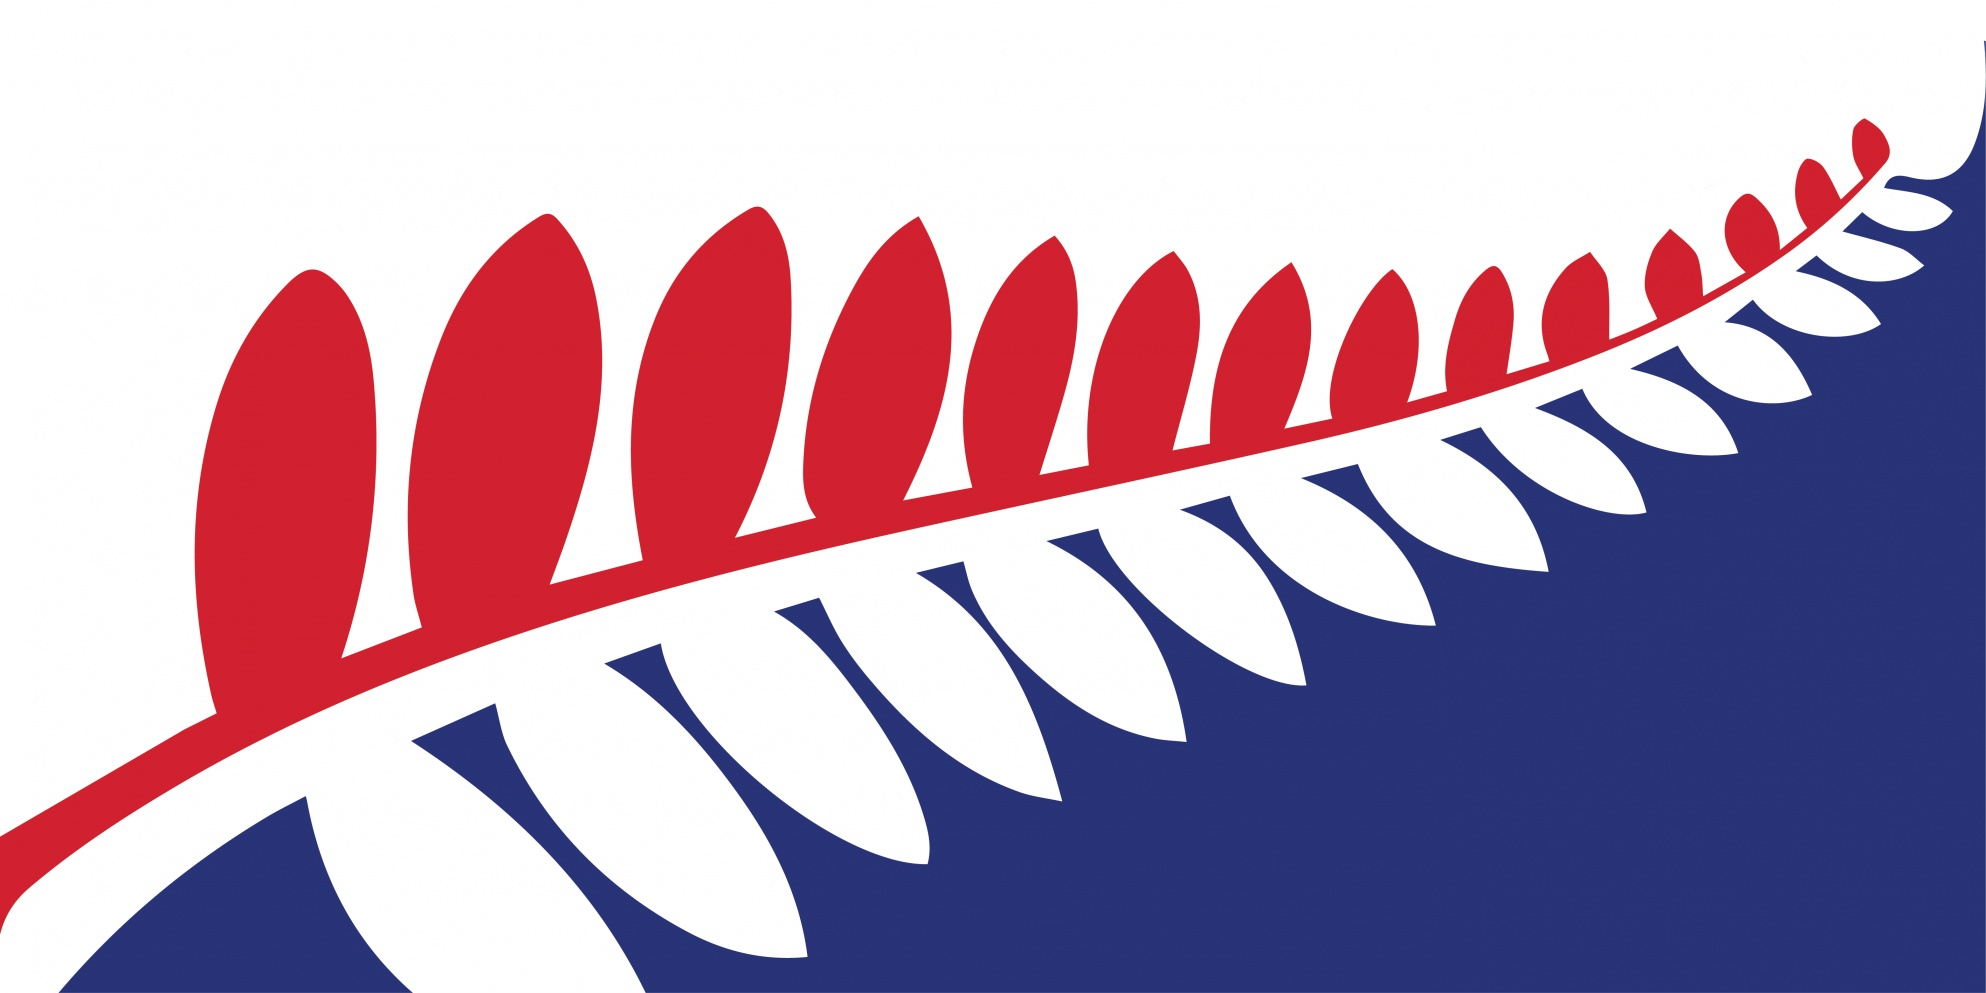 File:NZ flag design Unity Fern (Red & Blue) by Paul Jackways.jpg ...